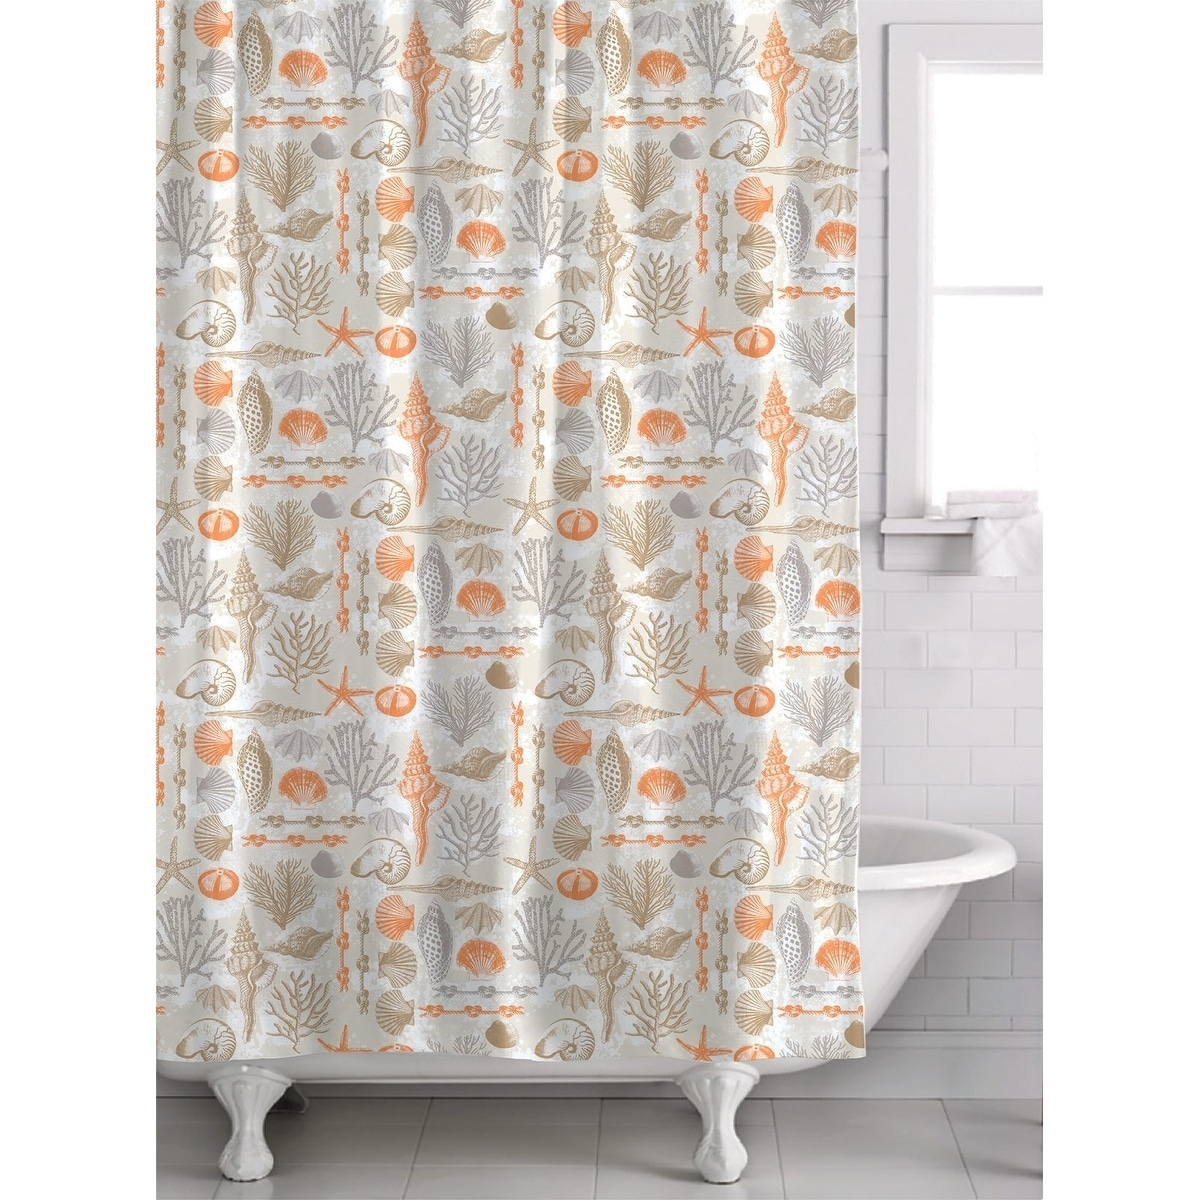 Nautical Fabric Shower Curtains Reef Point 13 Piece Fabric Shower Curtain Roller Ball Hook Set